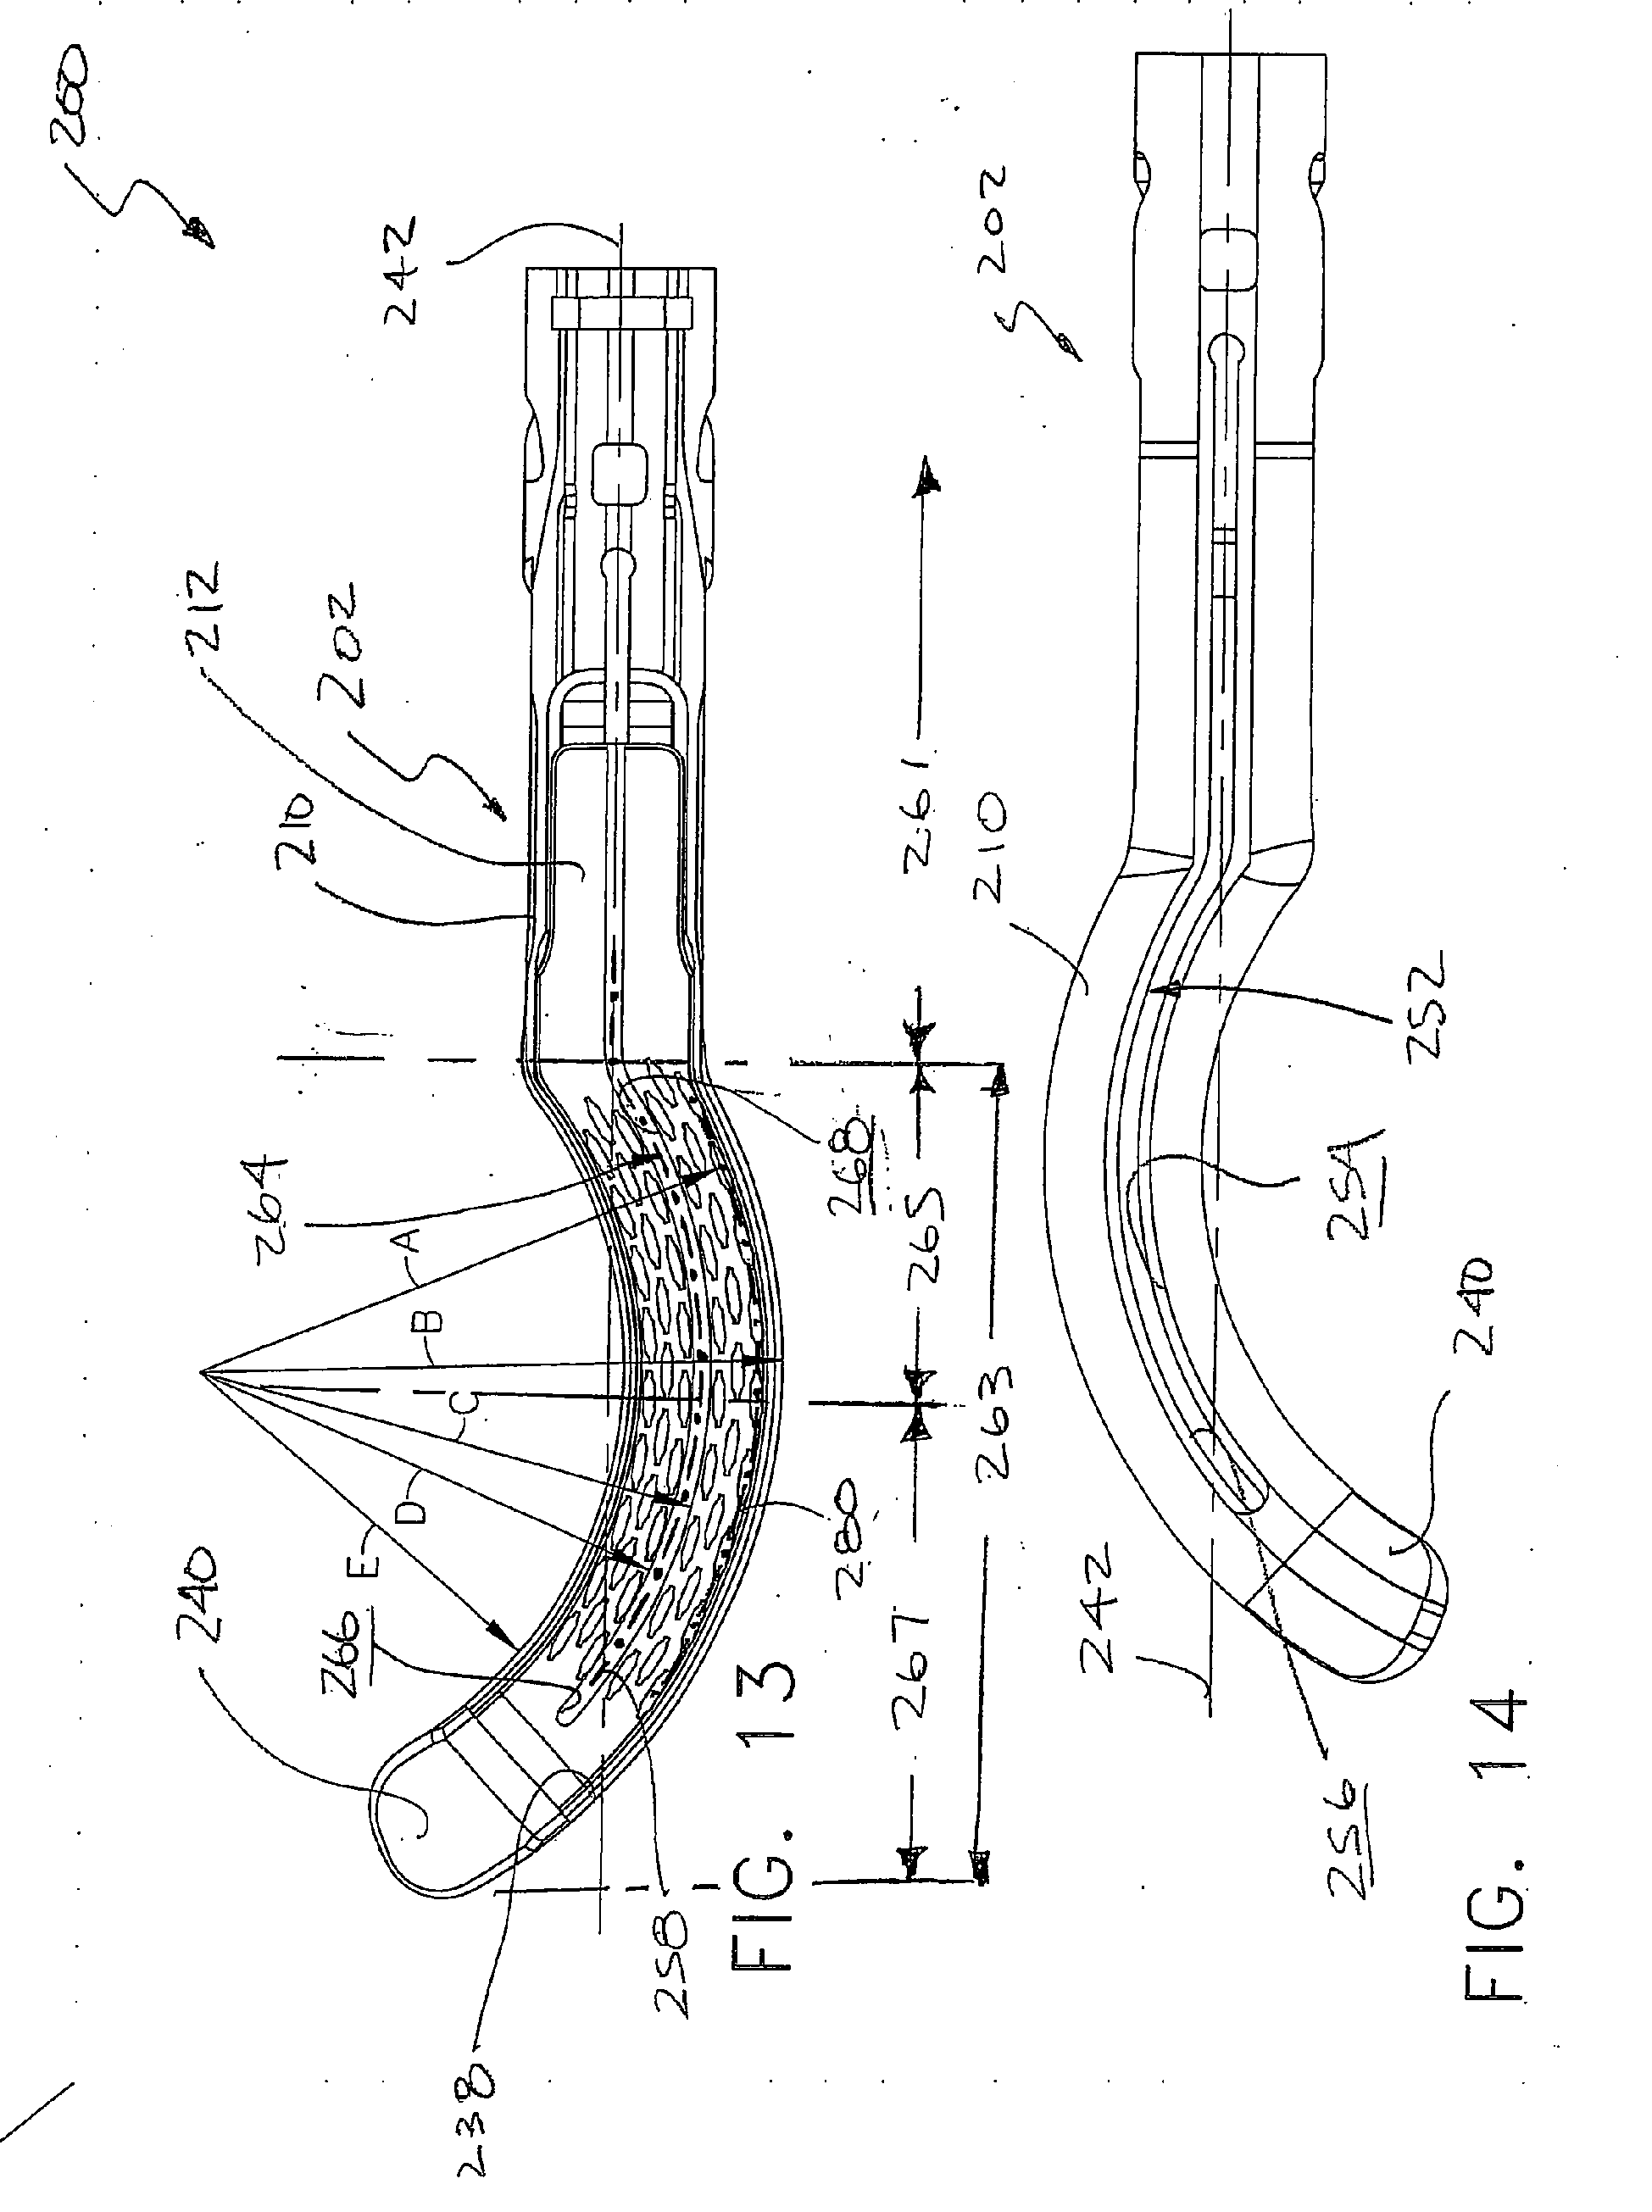 Ignition Circuit Diagram For The 1948 50 Packard All Models